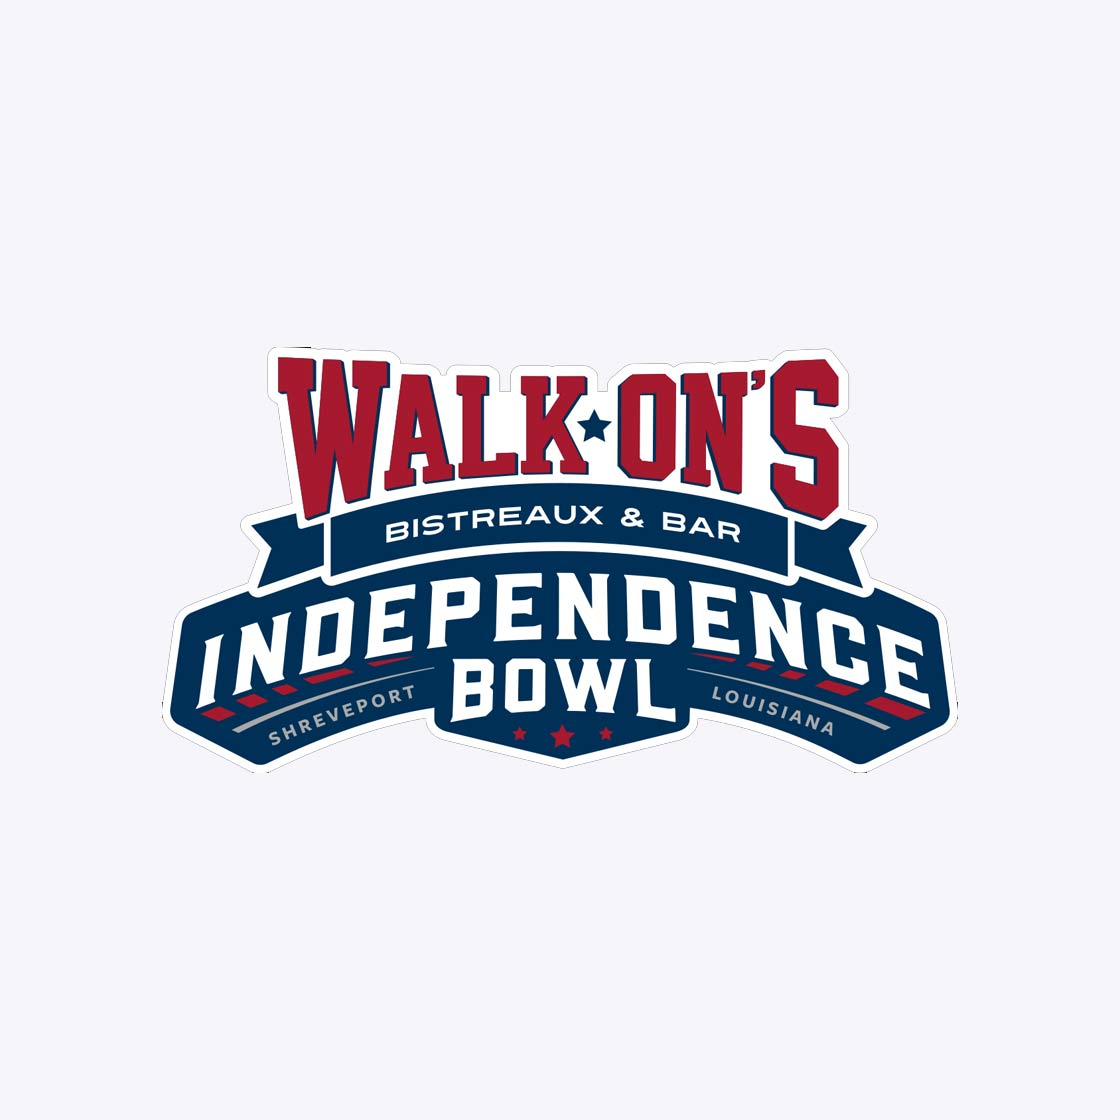 walk ons independence bowl